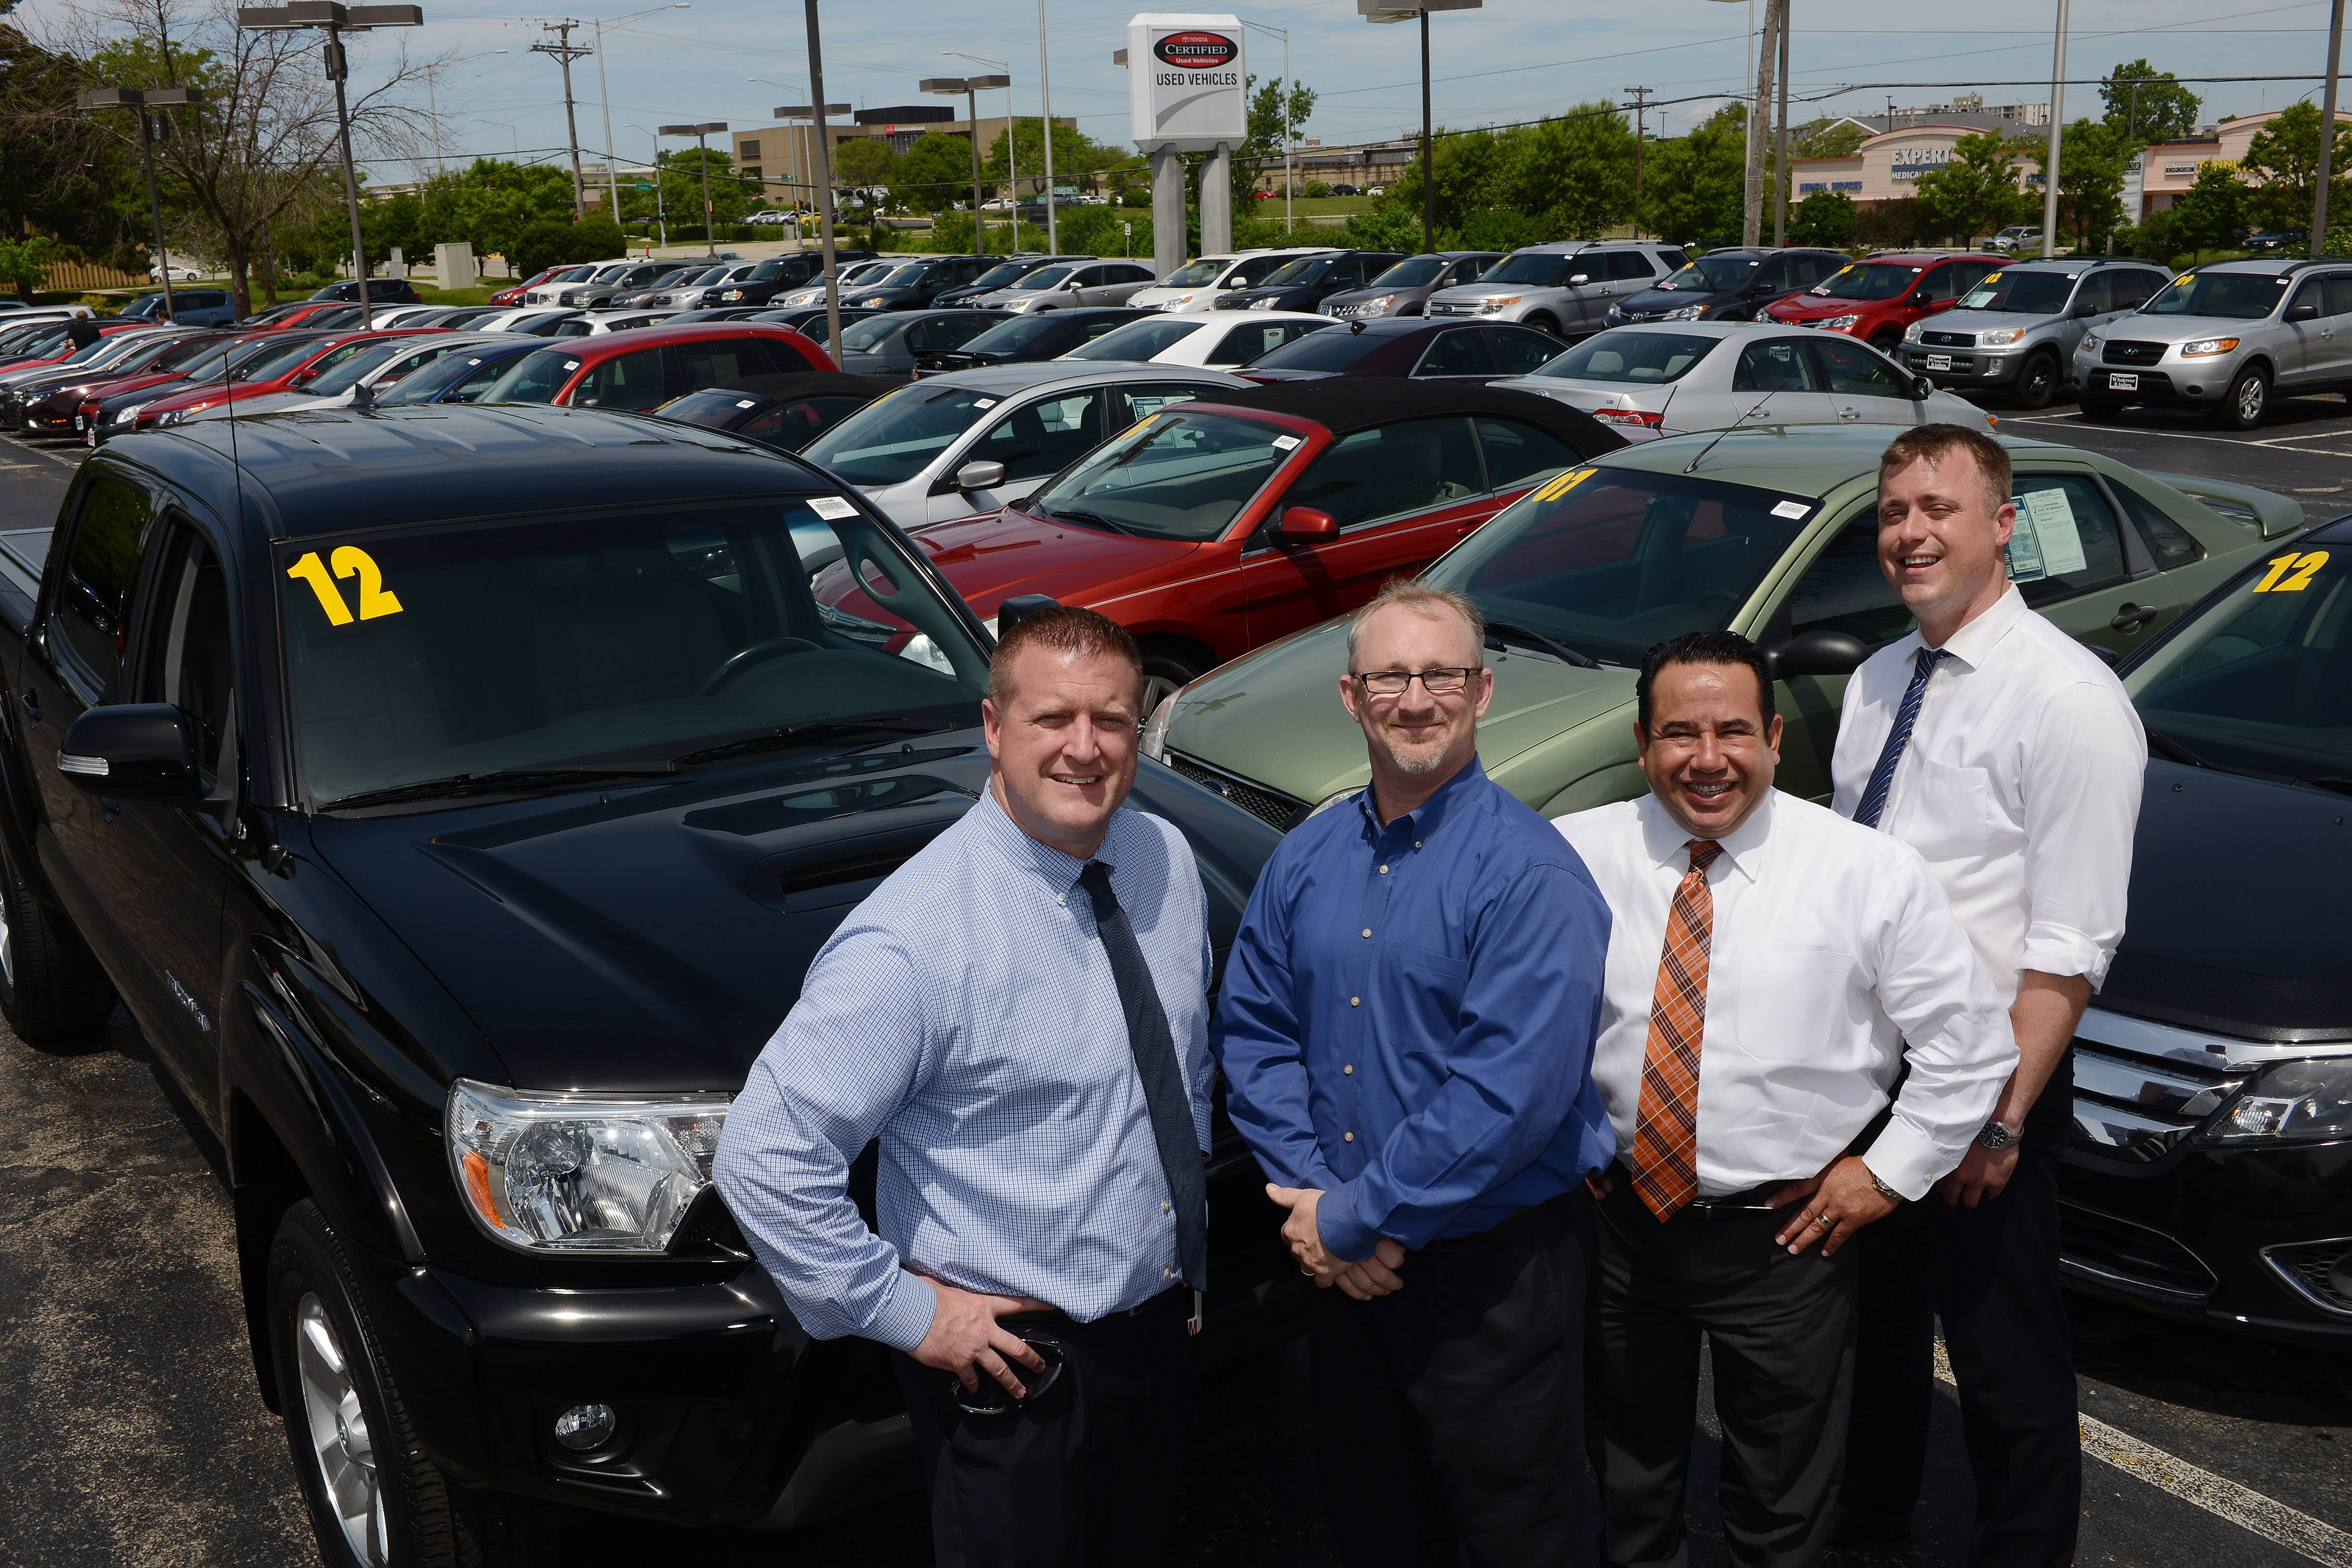 General sales manager Joe Shoemaker, from left, general manager Chris Haley, director of financial services Luis Santibanez and sales manager Jonathan Evensen, all of the Resnick Auto Group, have been getting ready for the Giant Tent Event tent sale at Schaumburg's Woodfield Mall.